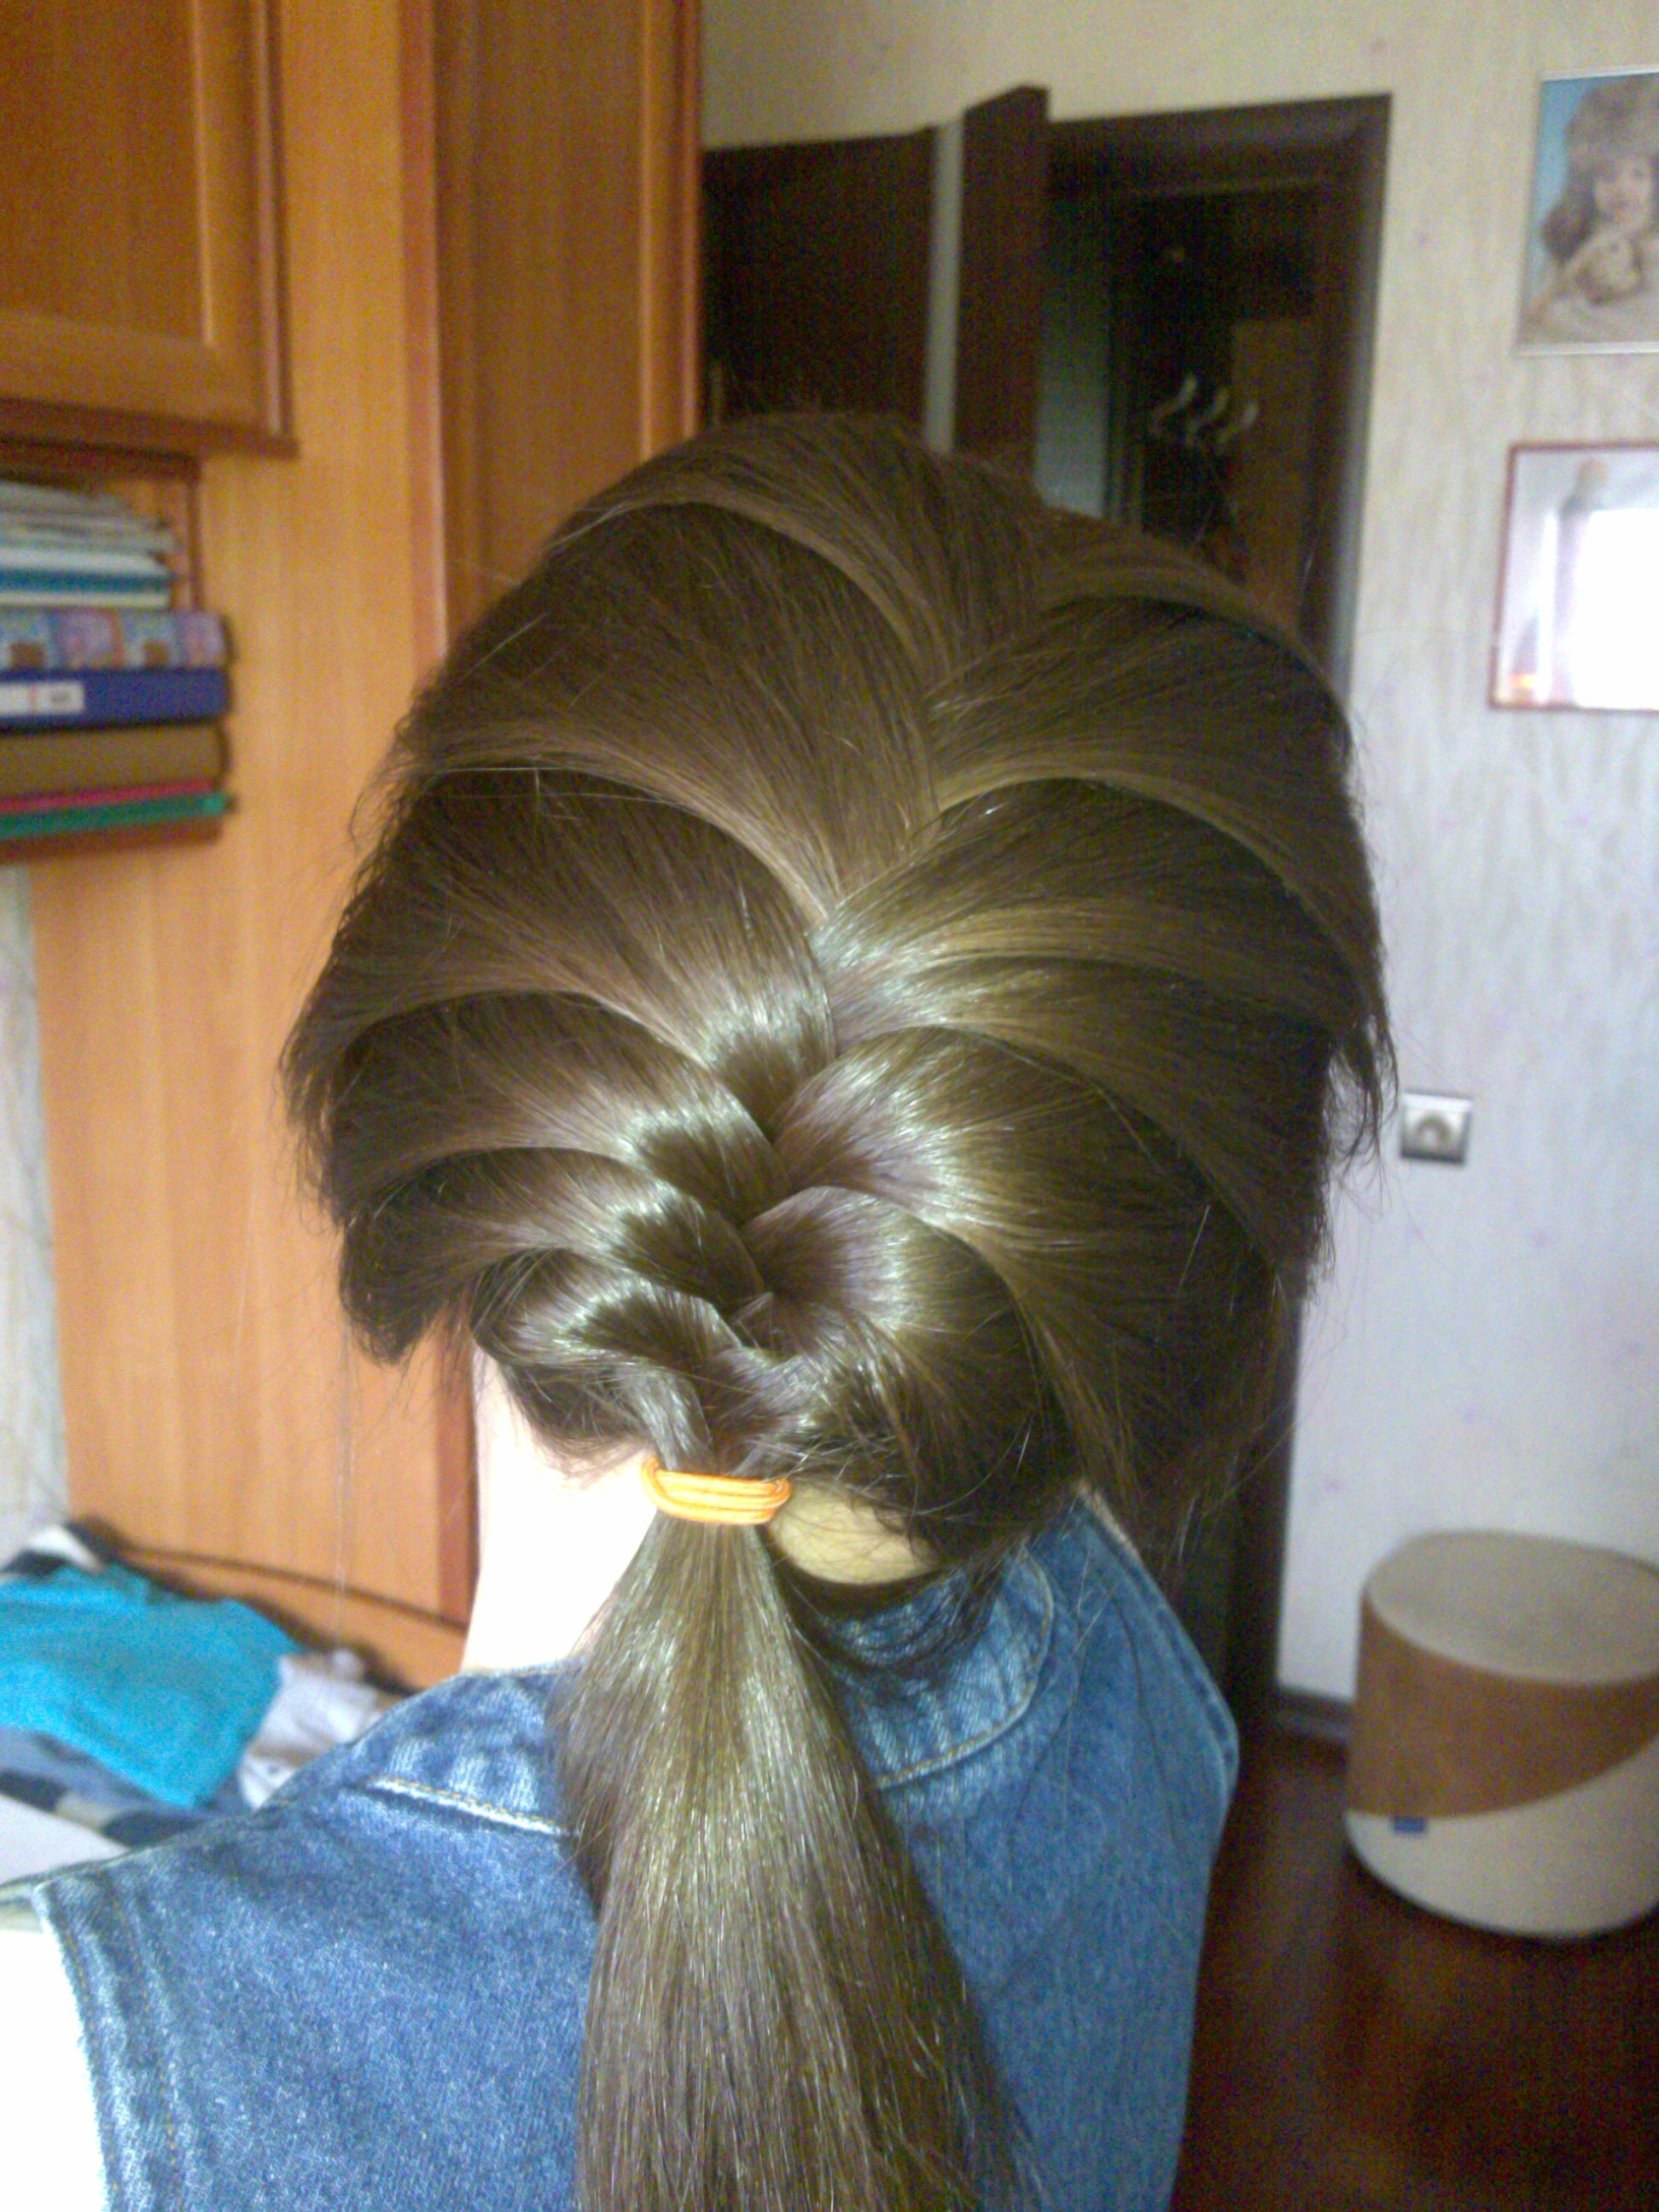 Tags:how To French Braid Your Own Hair In Two Parts Neatly, Dutch Braid